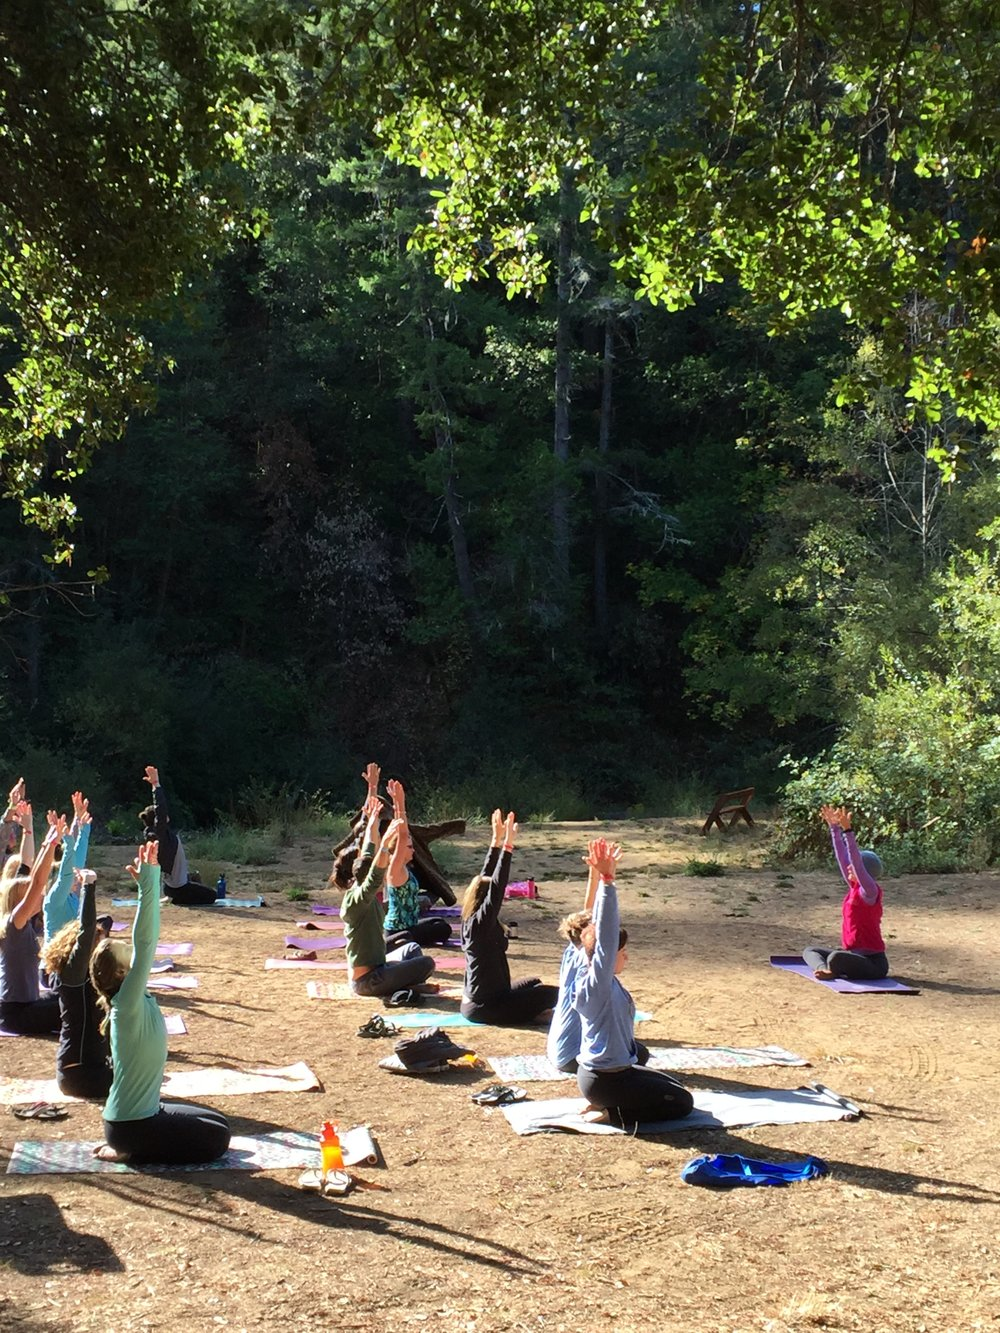 Camp Navarro_Yoga Session #2_Photo credit Dan Braun.JPG